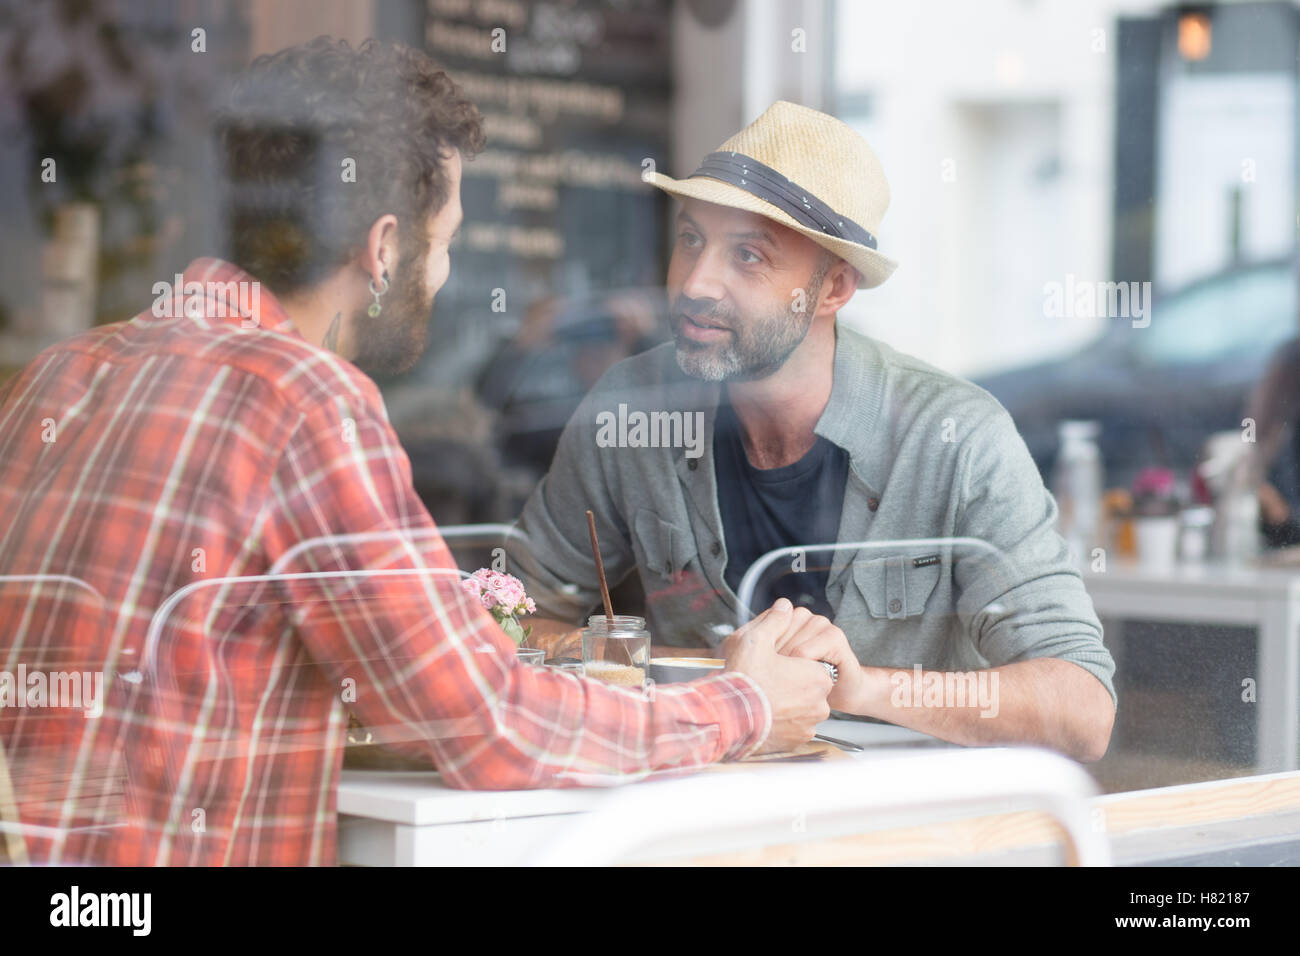 Coppia gay sat holding hands in cafe Immagini Stock